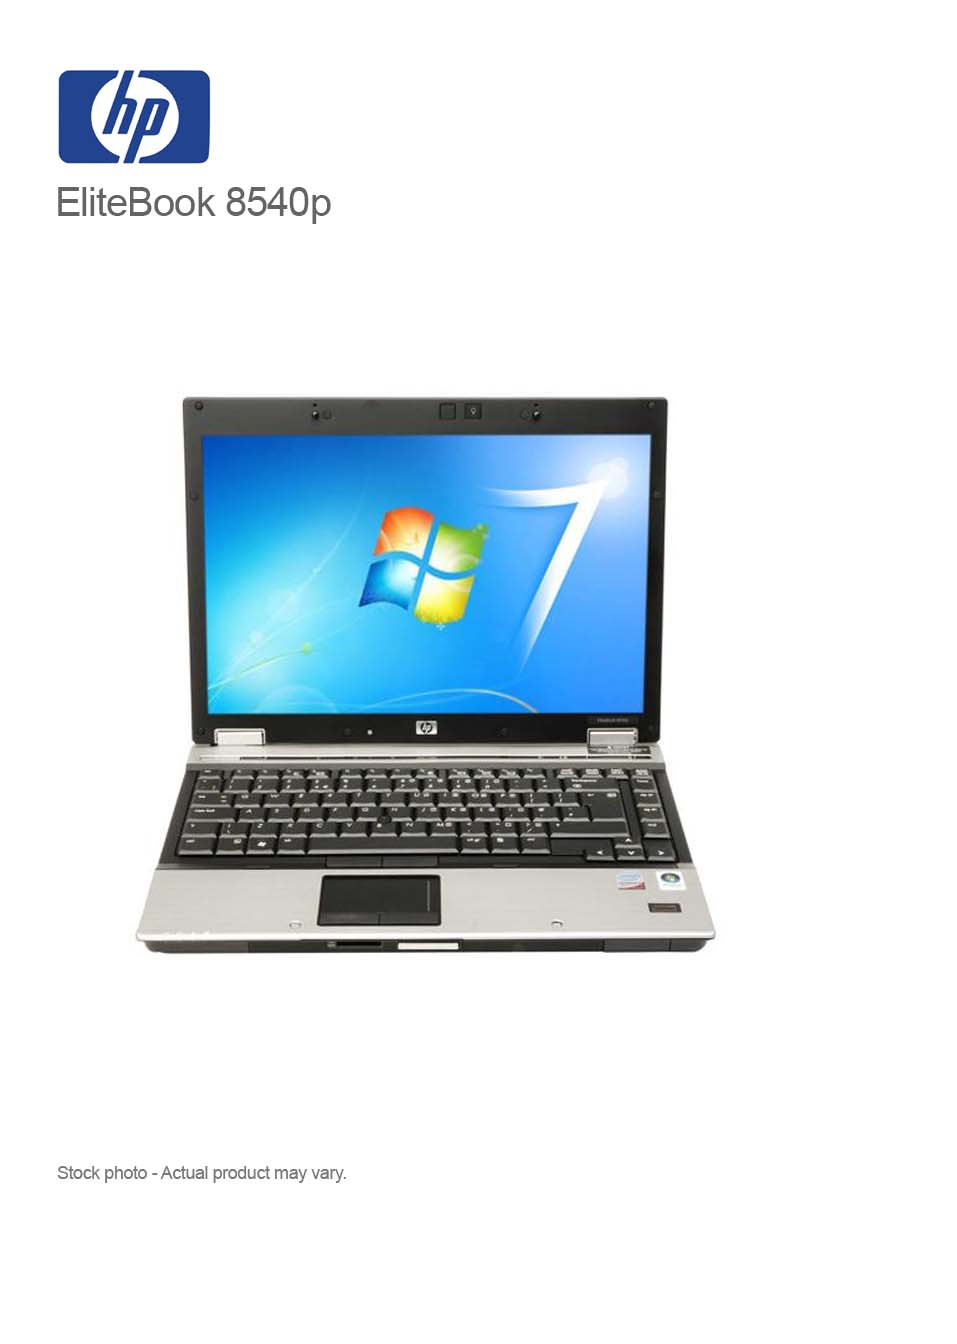 Hp 8540p usb 3 0 drivers | HP EliteBook 8540p drivers  2019